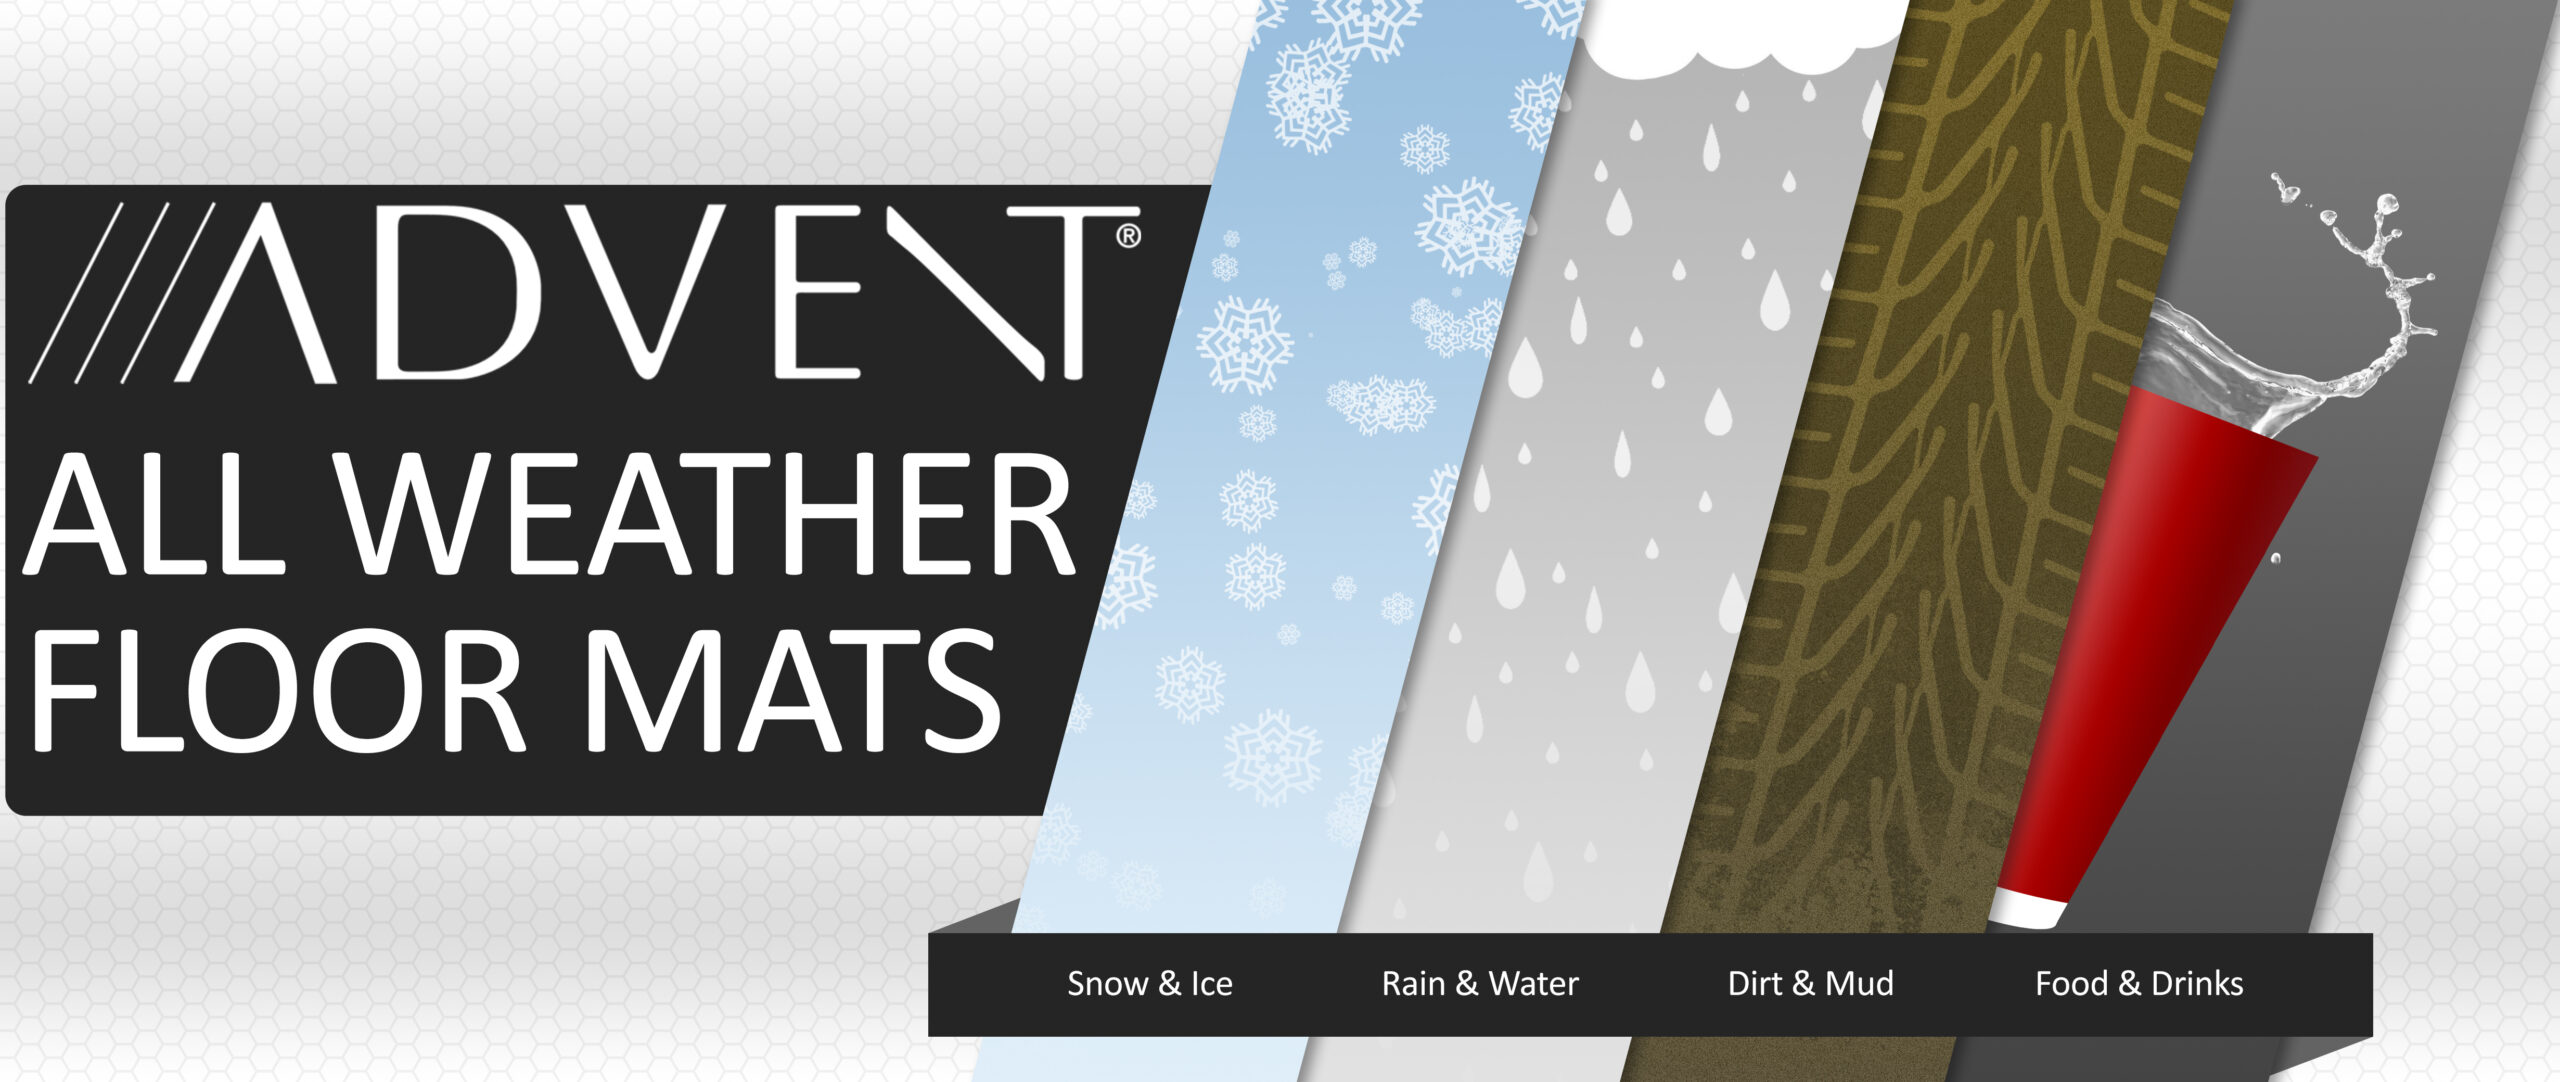 All-Weather Floor Mats from Auer Automotive and Advent